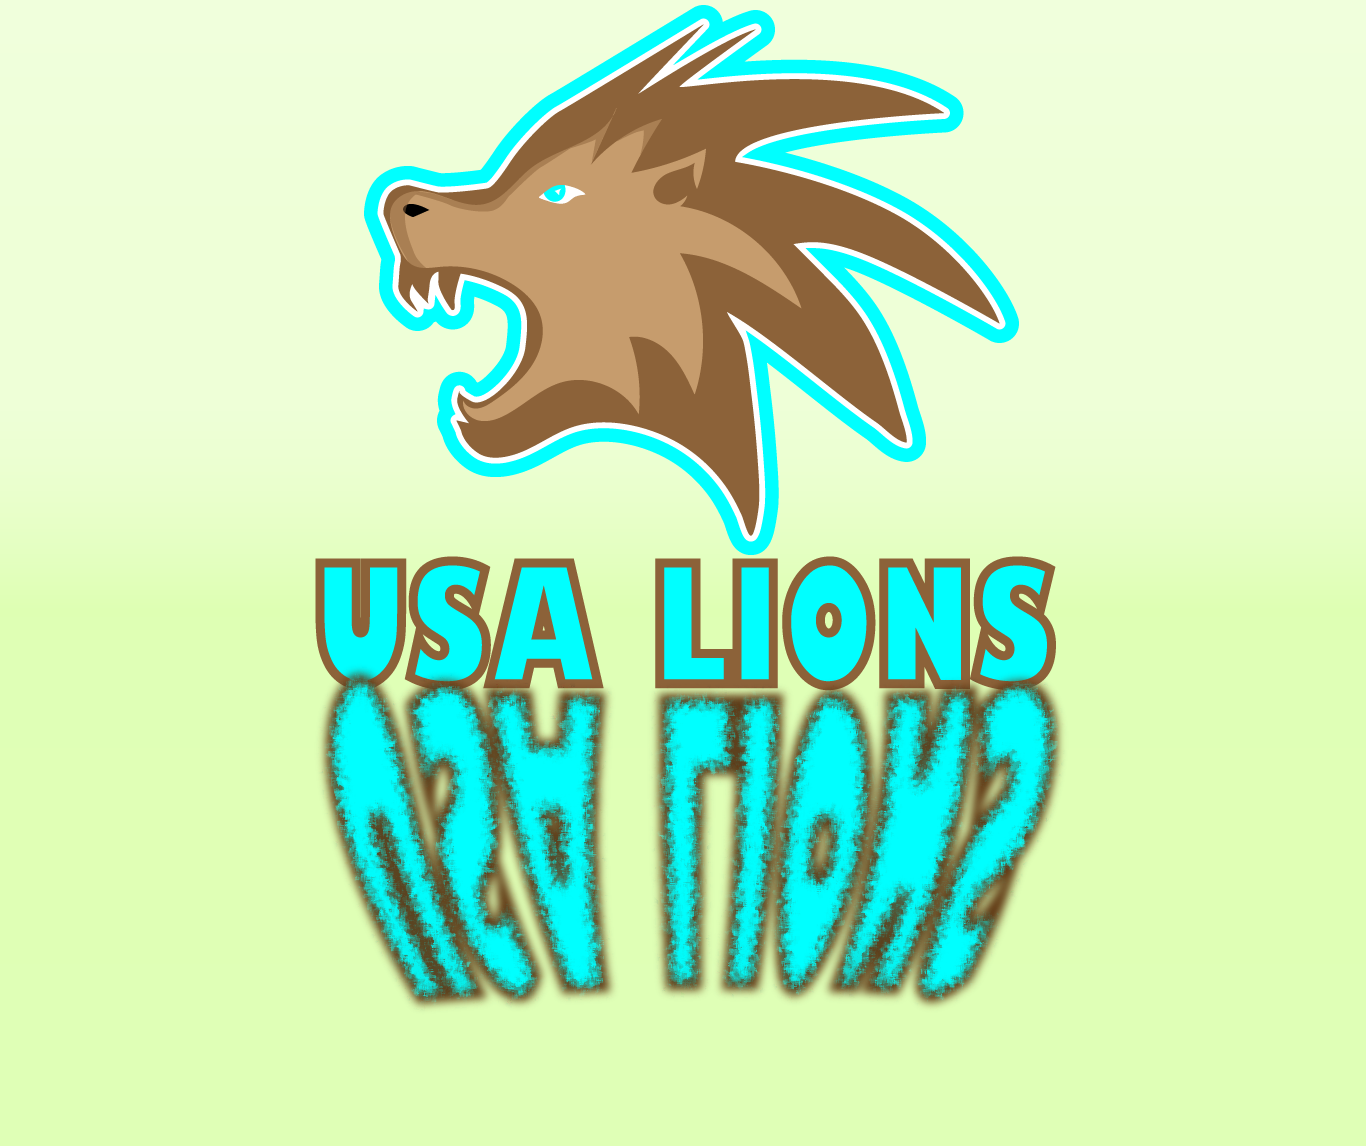 This is a Mascot Logo designed by Dellstone Web Designs for Portfolio Purposes only